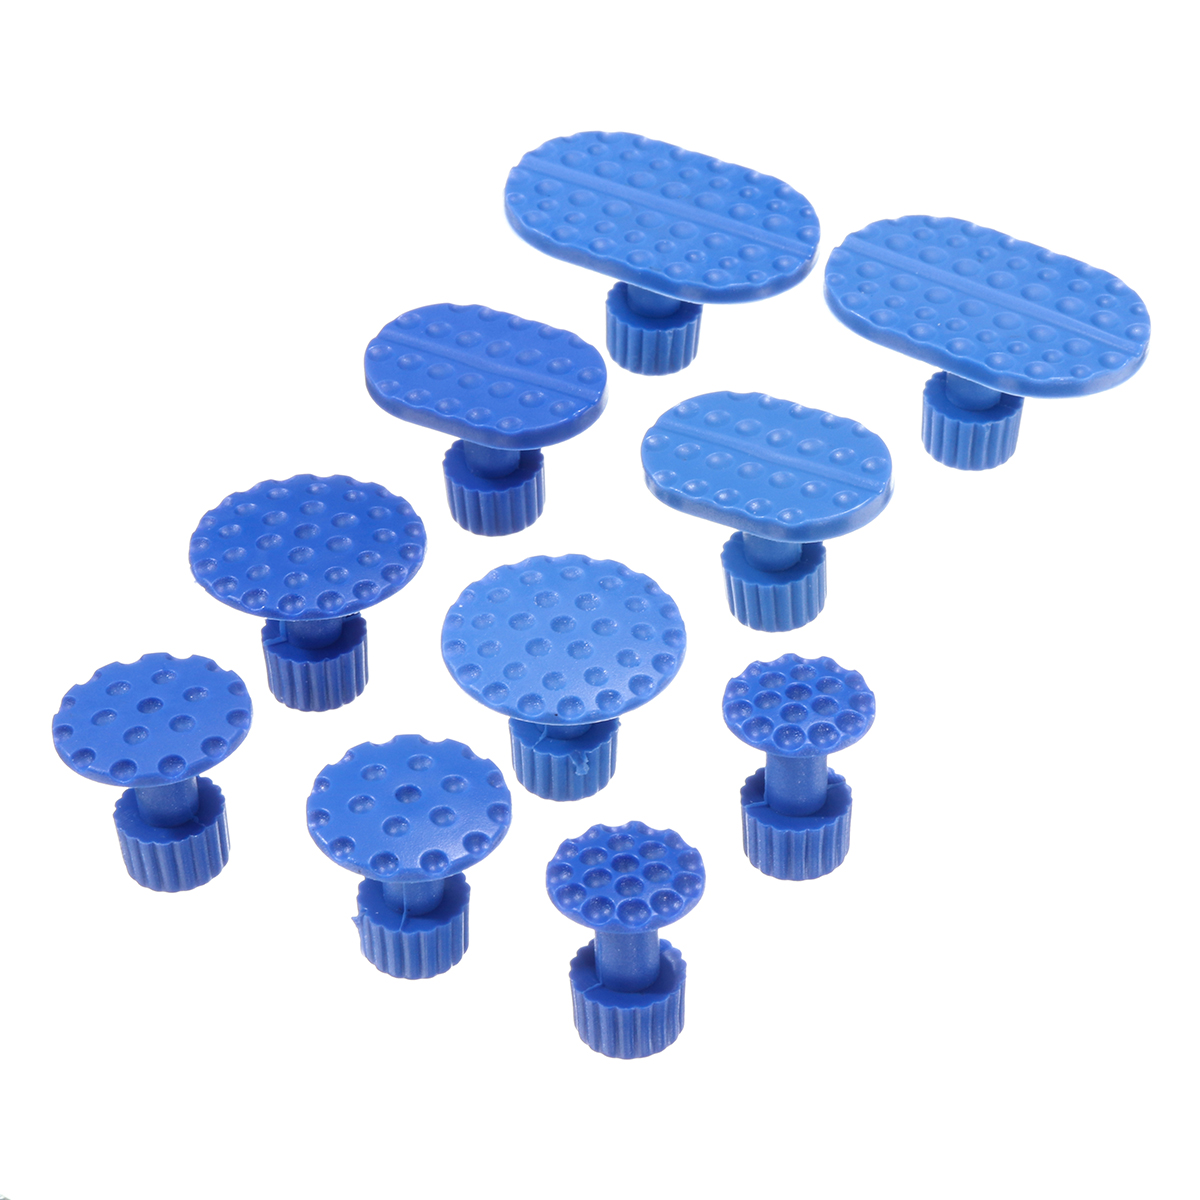 30Pcs Glue Tabs Dent Lifter Tools Puller Removal Slide Hammer Tool For Auto Paintless Dent Repair Glue Tabs